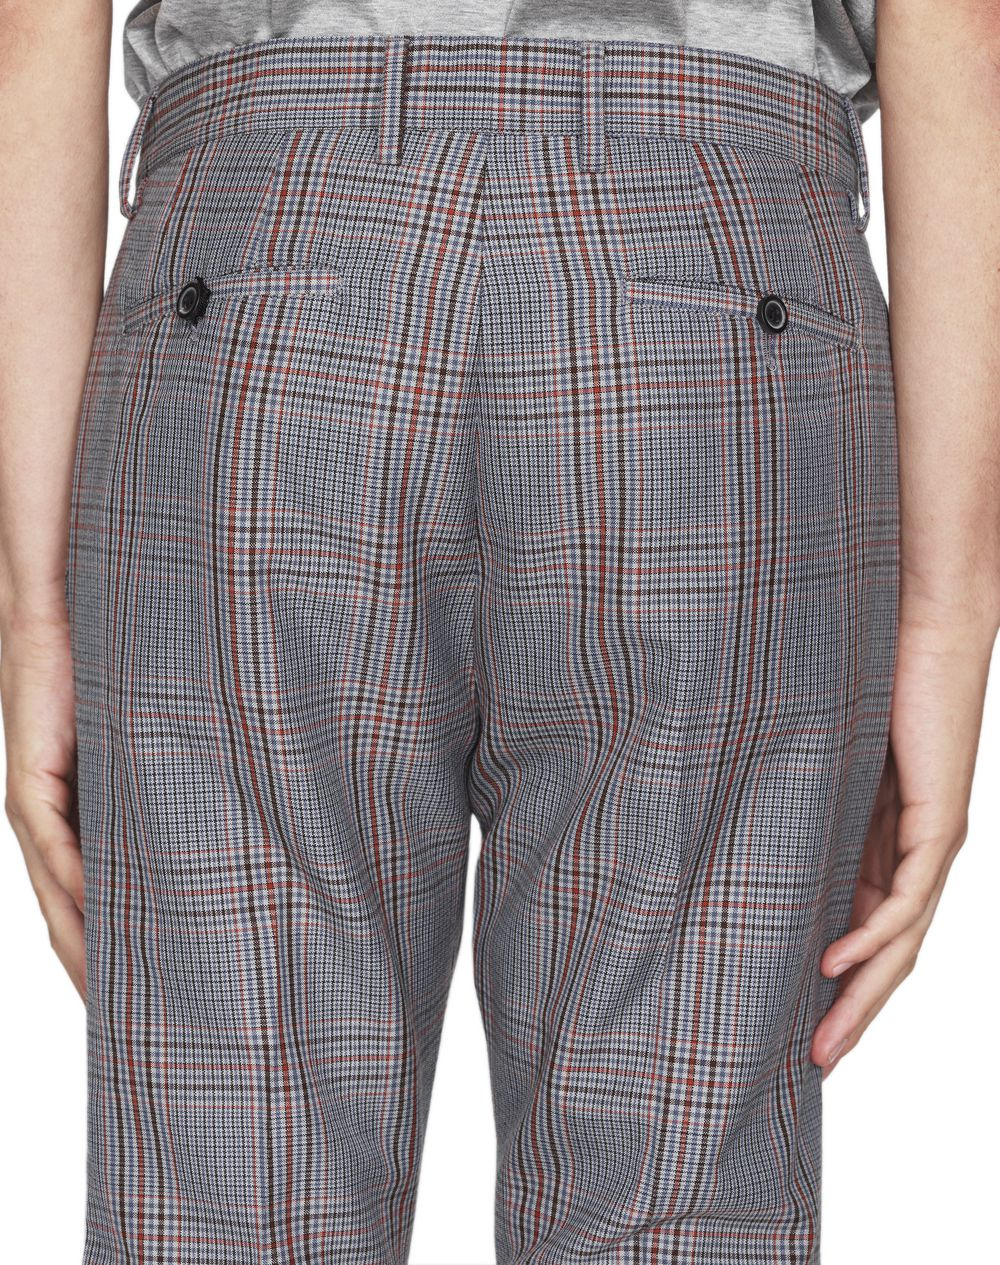 FITTED DRAWSTRING PANTS - Lanvin